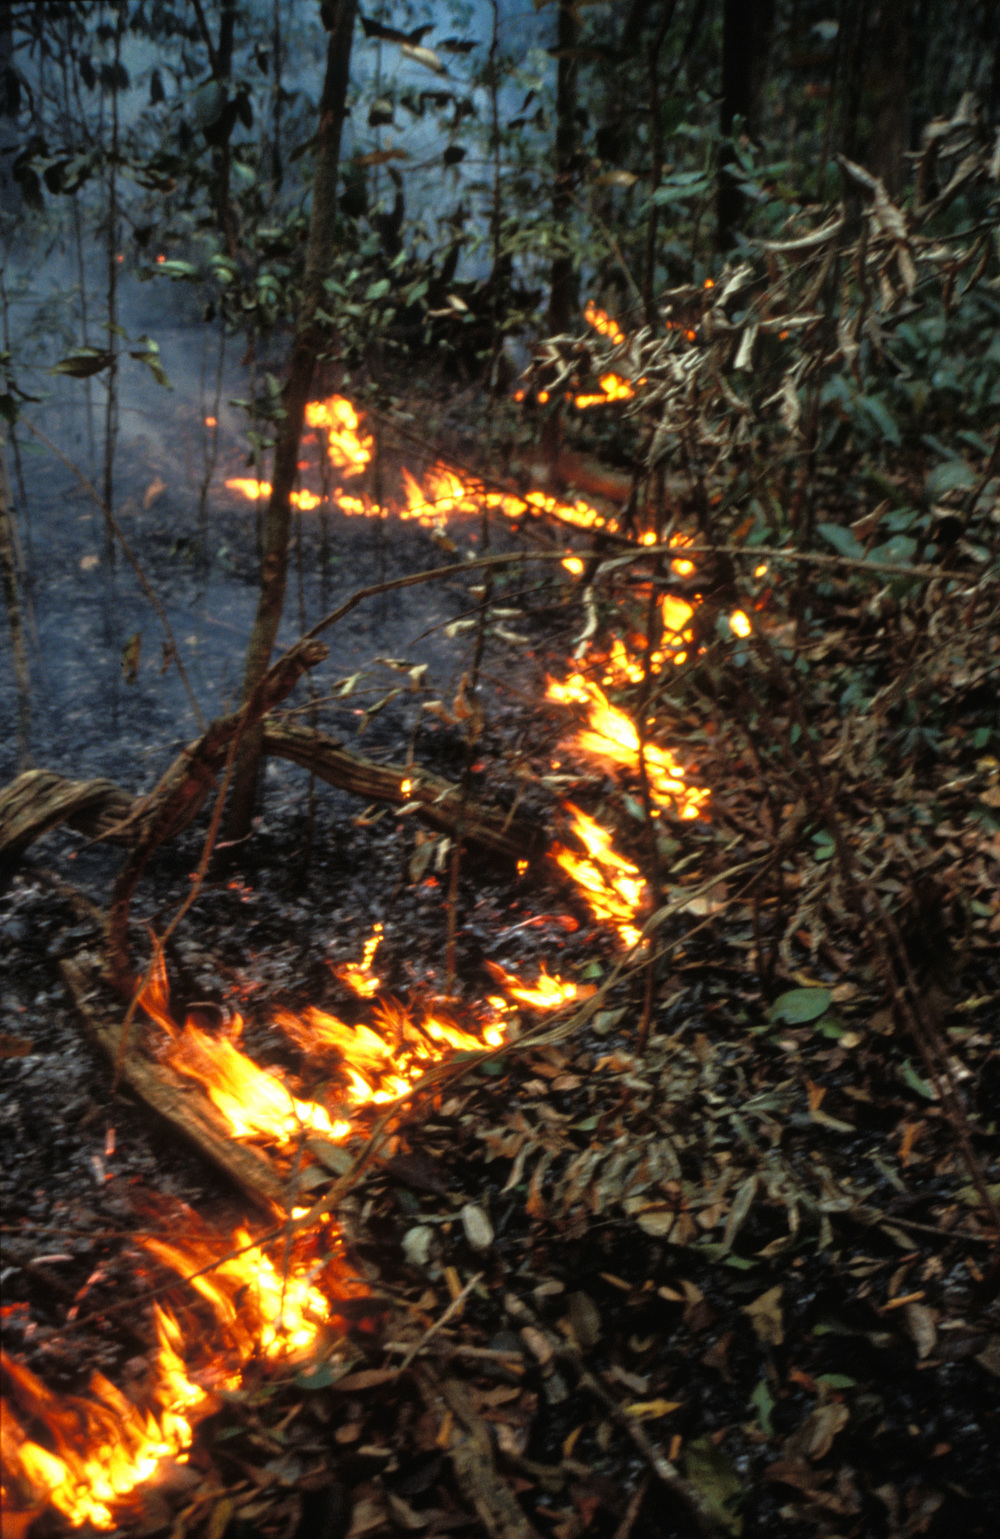 Fires... not natural in rainforests  (photo by Mark Cochrane)